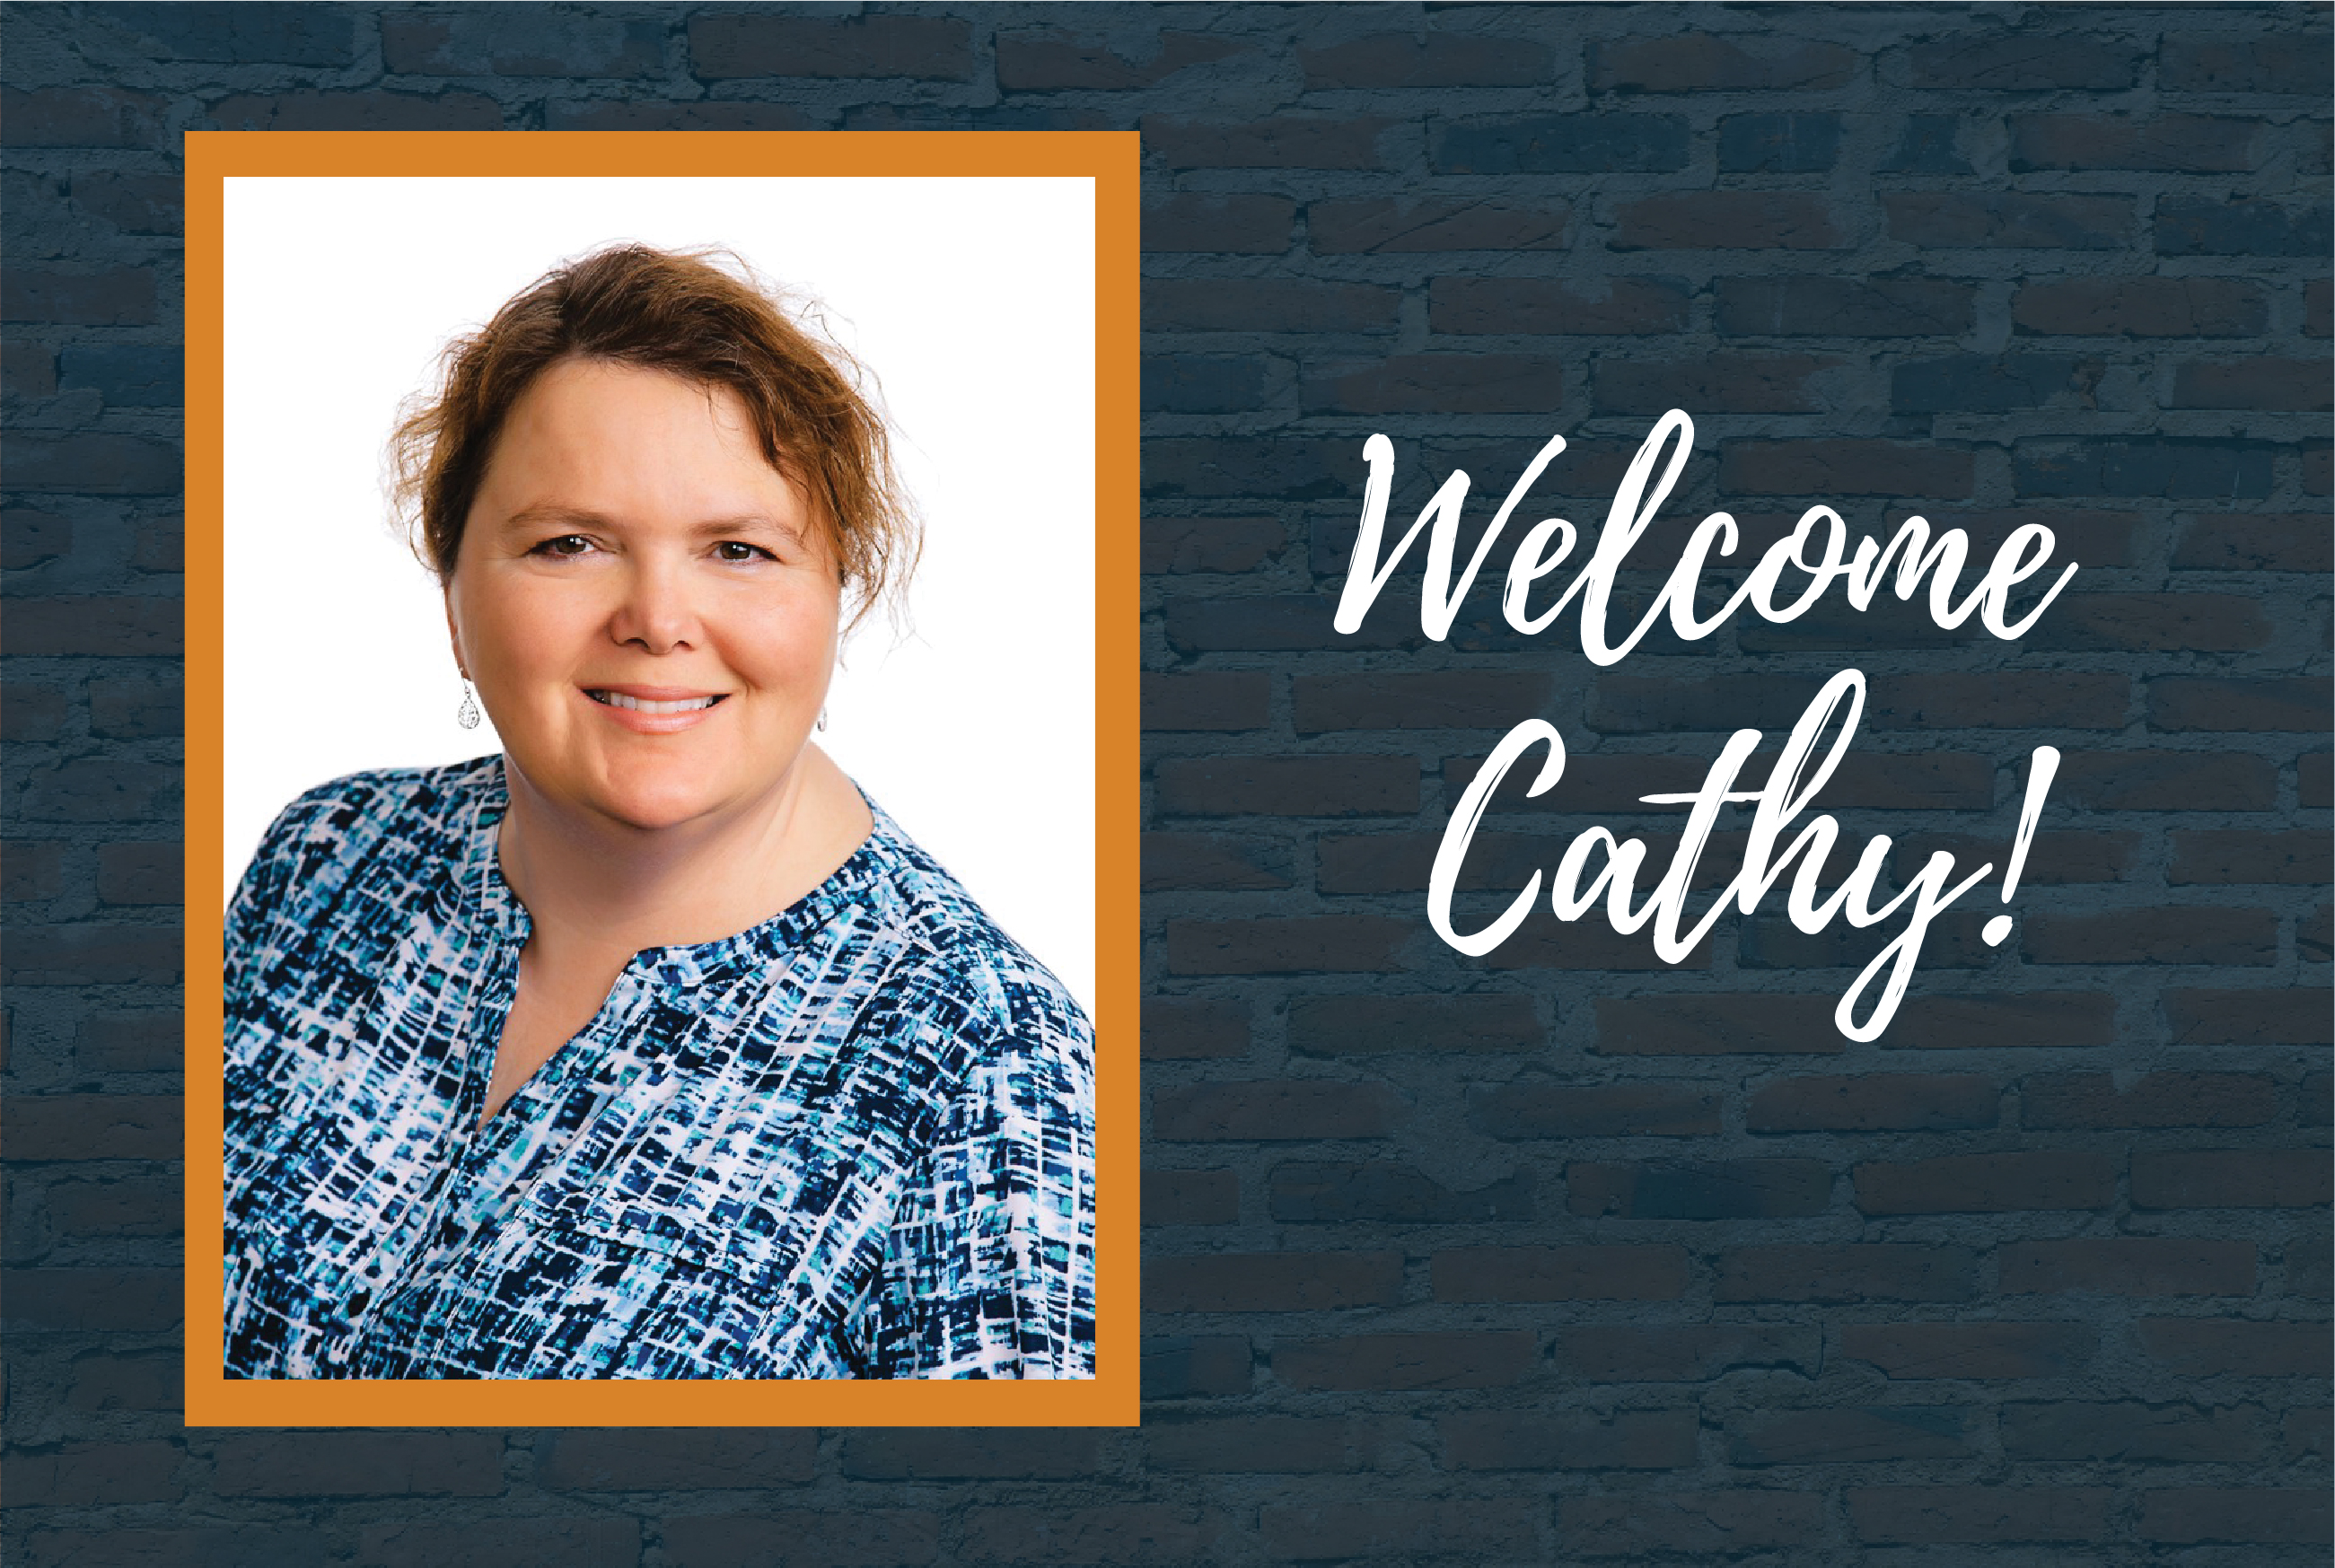 Help us welcome Cathy